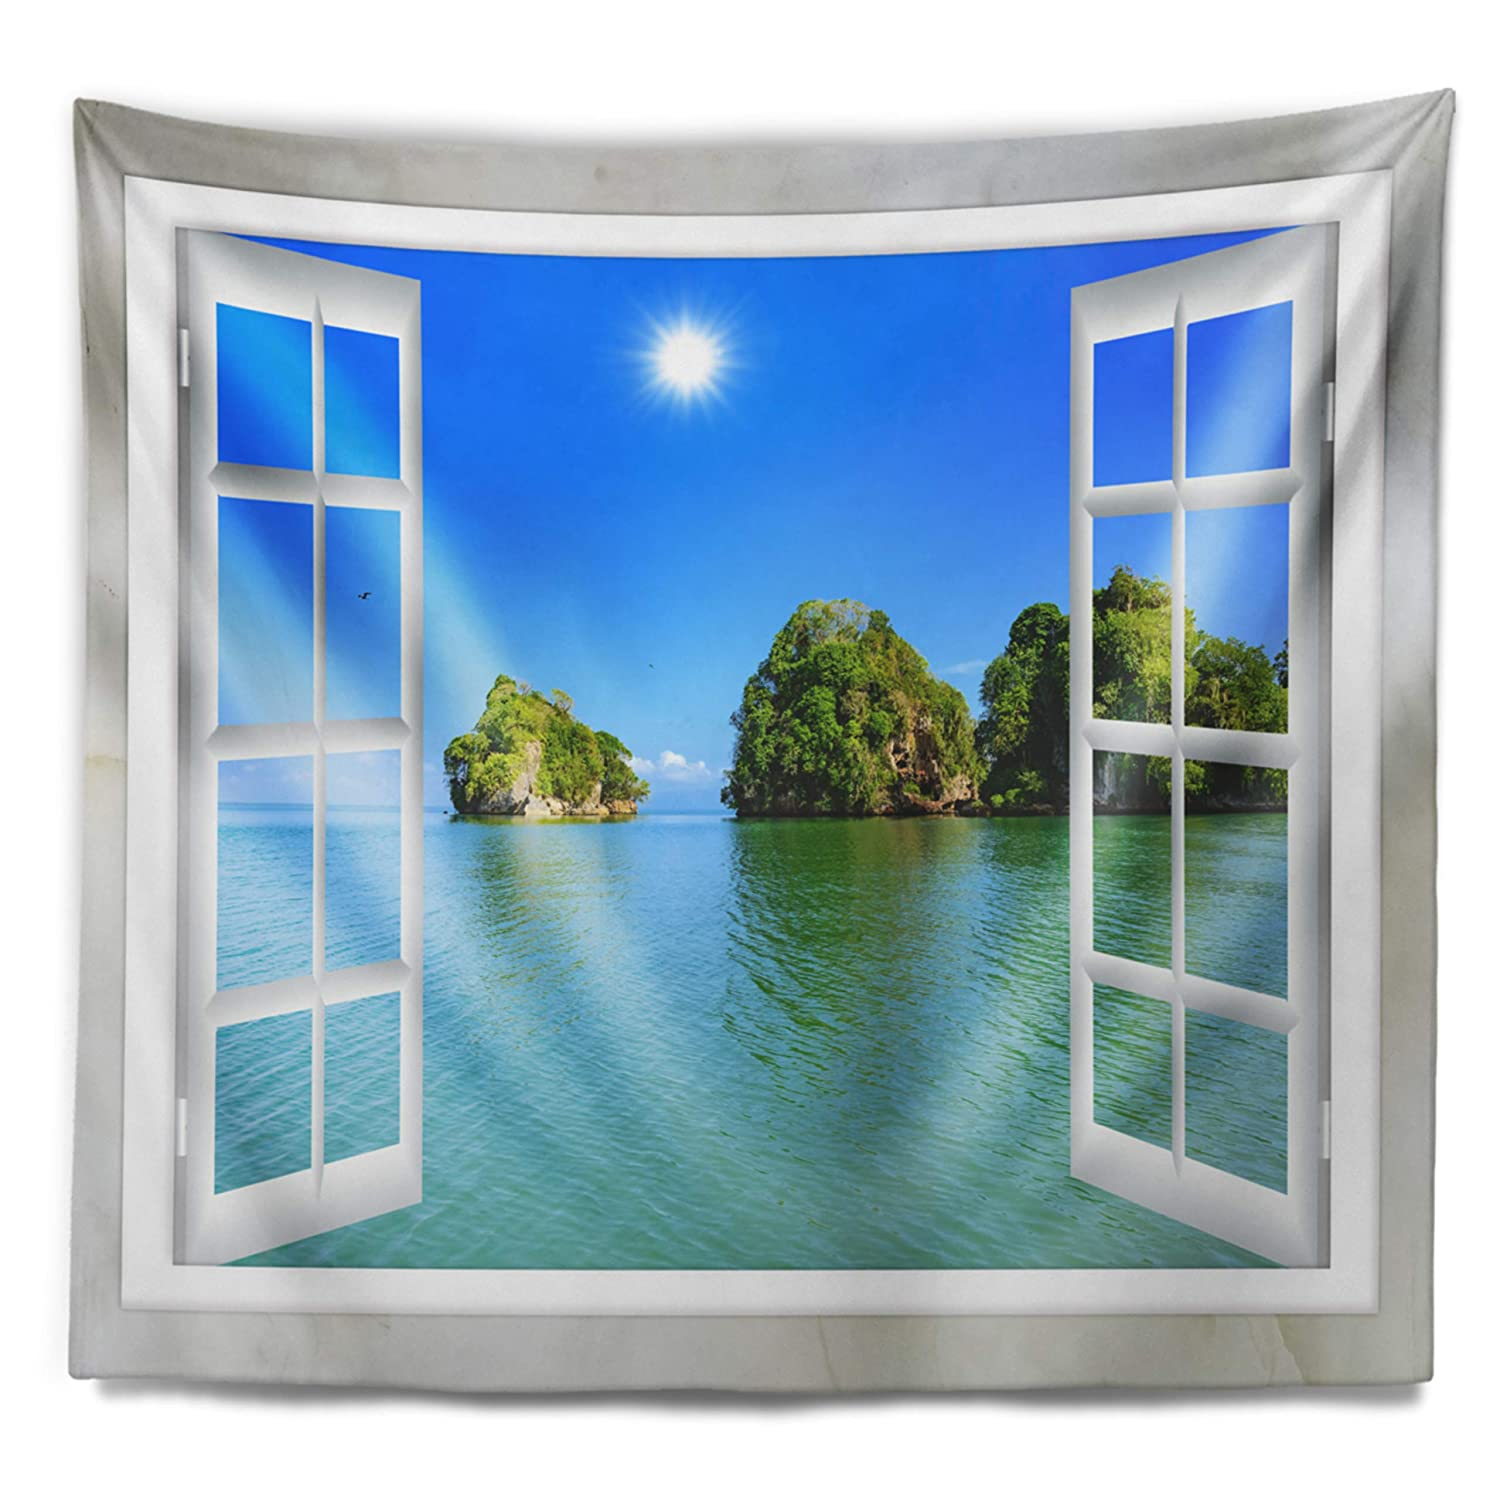 39 in in x 32 in Designart TAP11424-39-32  Open Window to Ocean Islets Landscape Blanket D/écor Art for Home and Office Wall Tapestry Medium